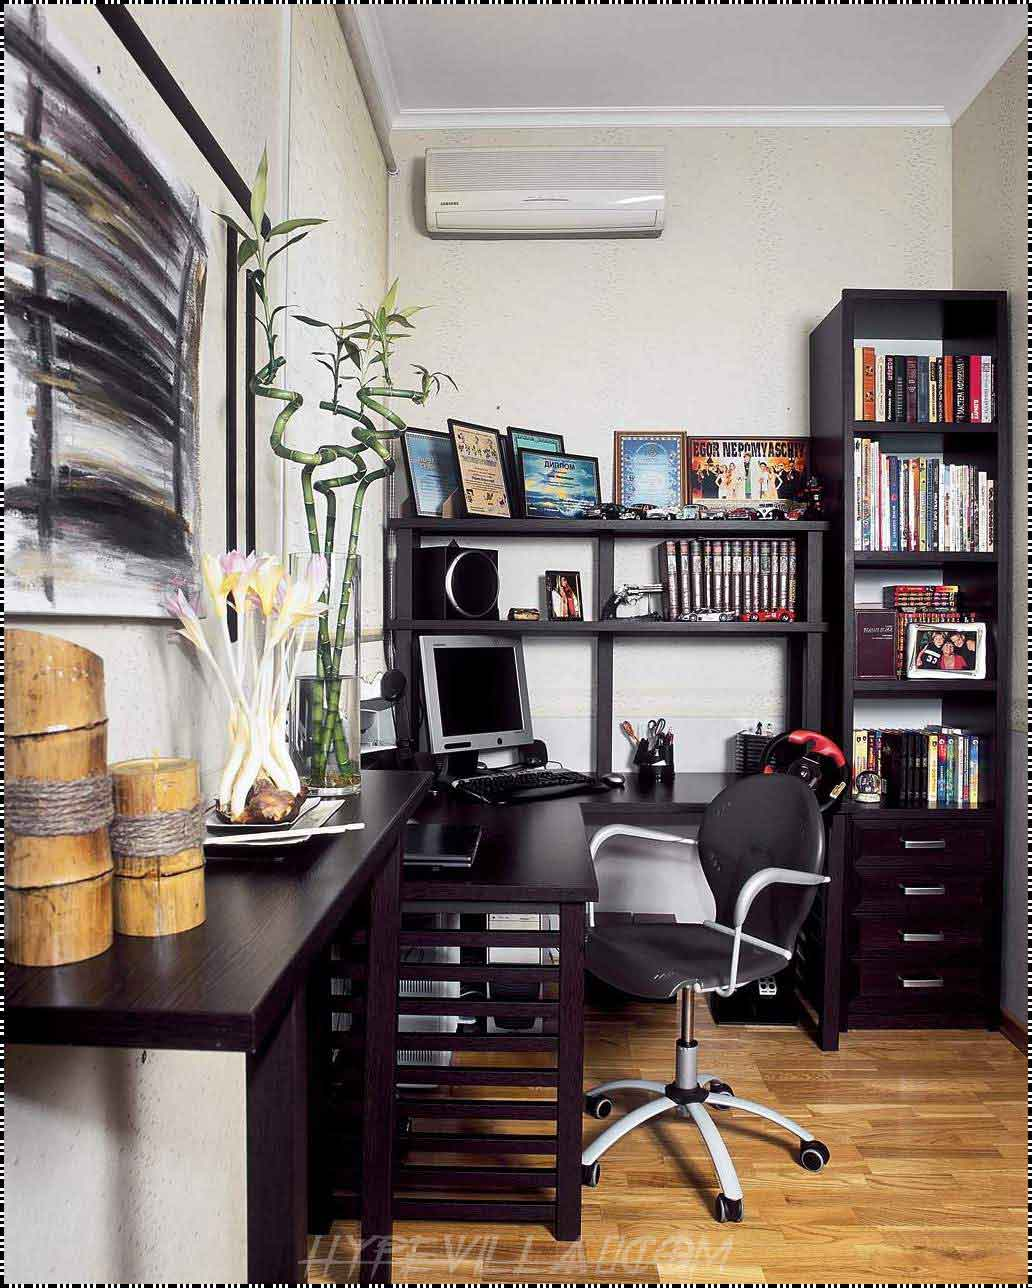 Modern-Study-Room-Interior-Design-with-black-furniture.jpg